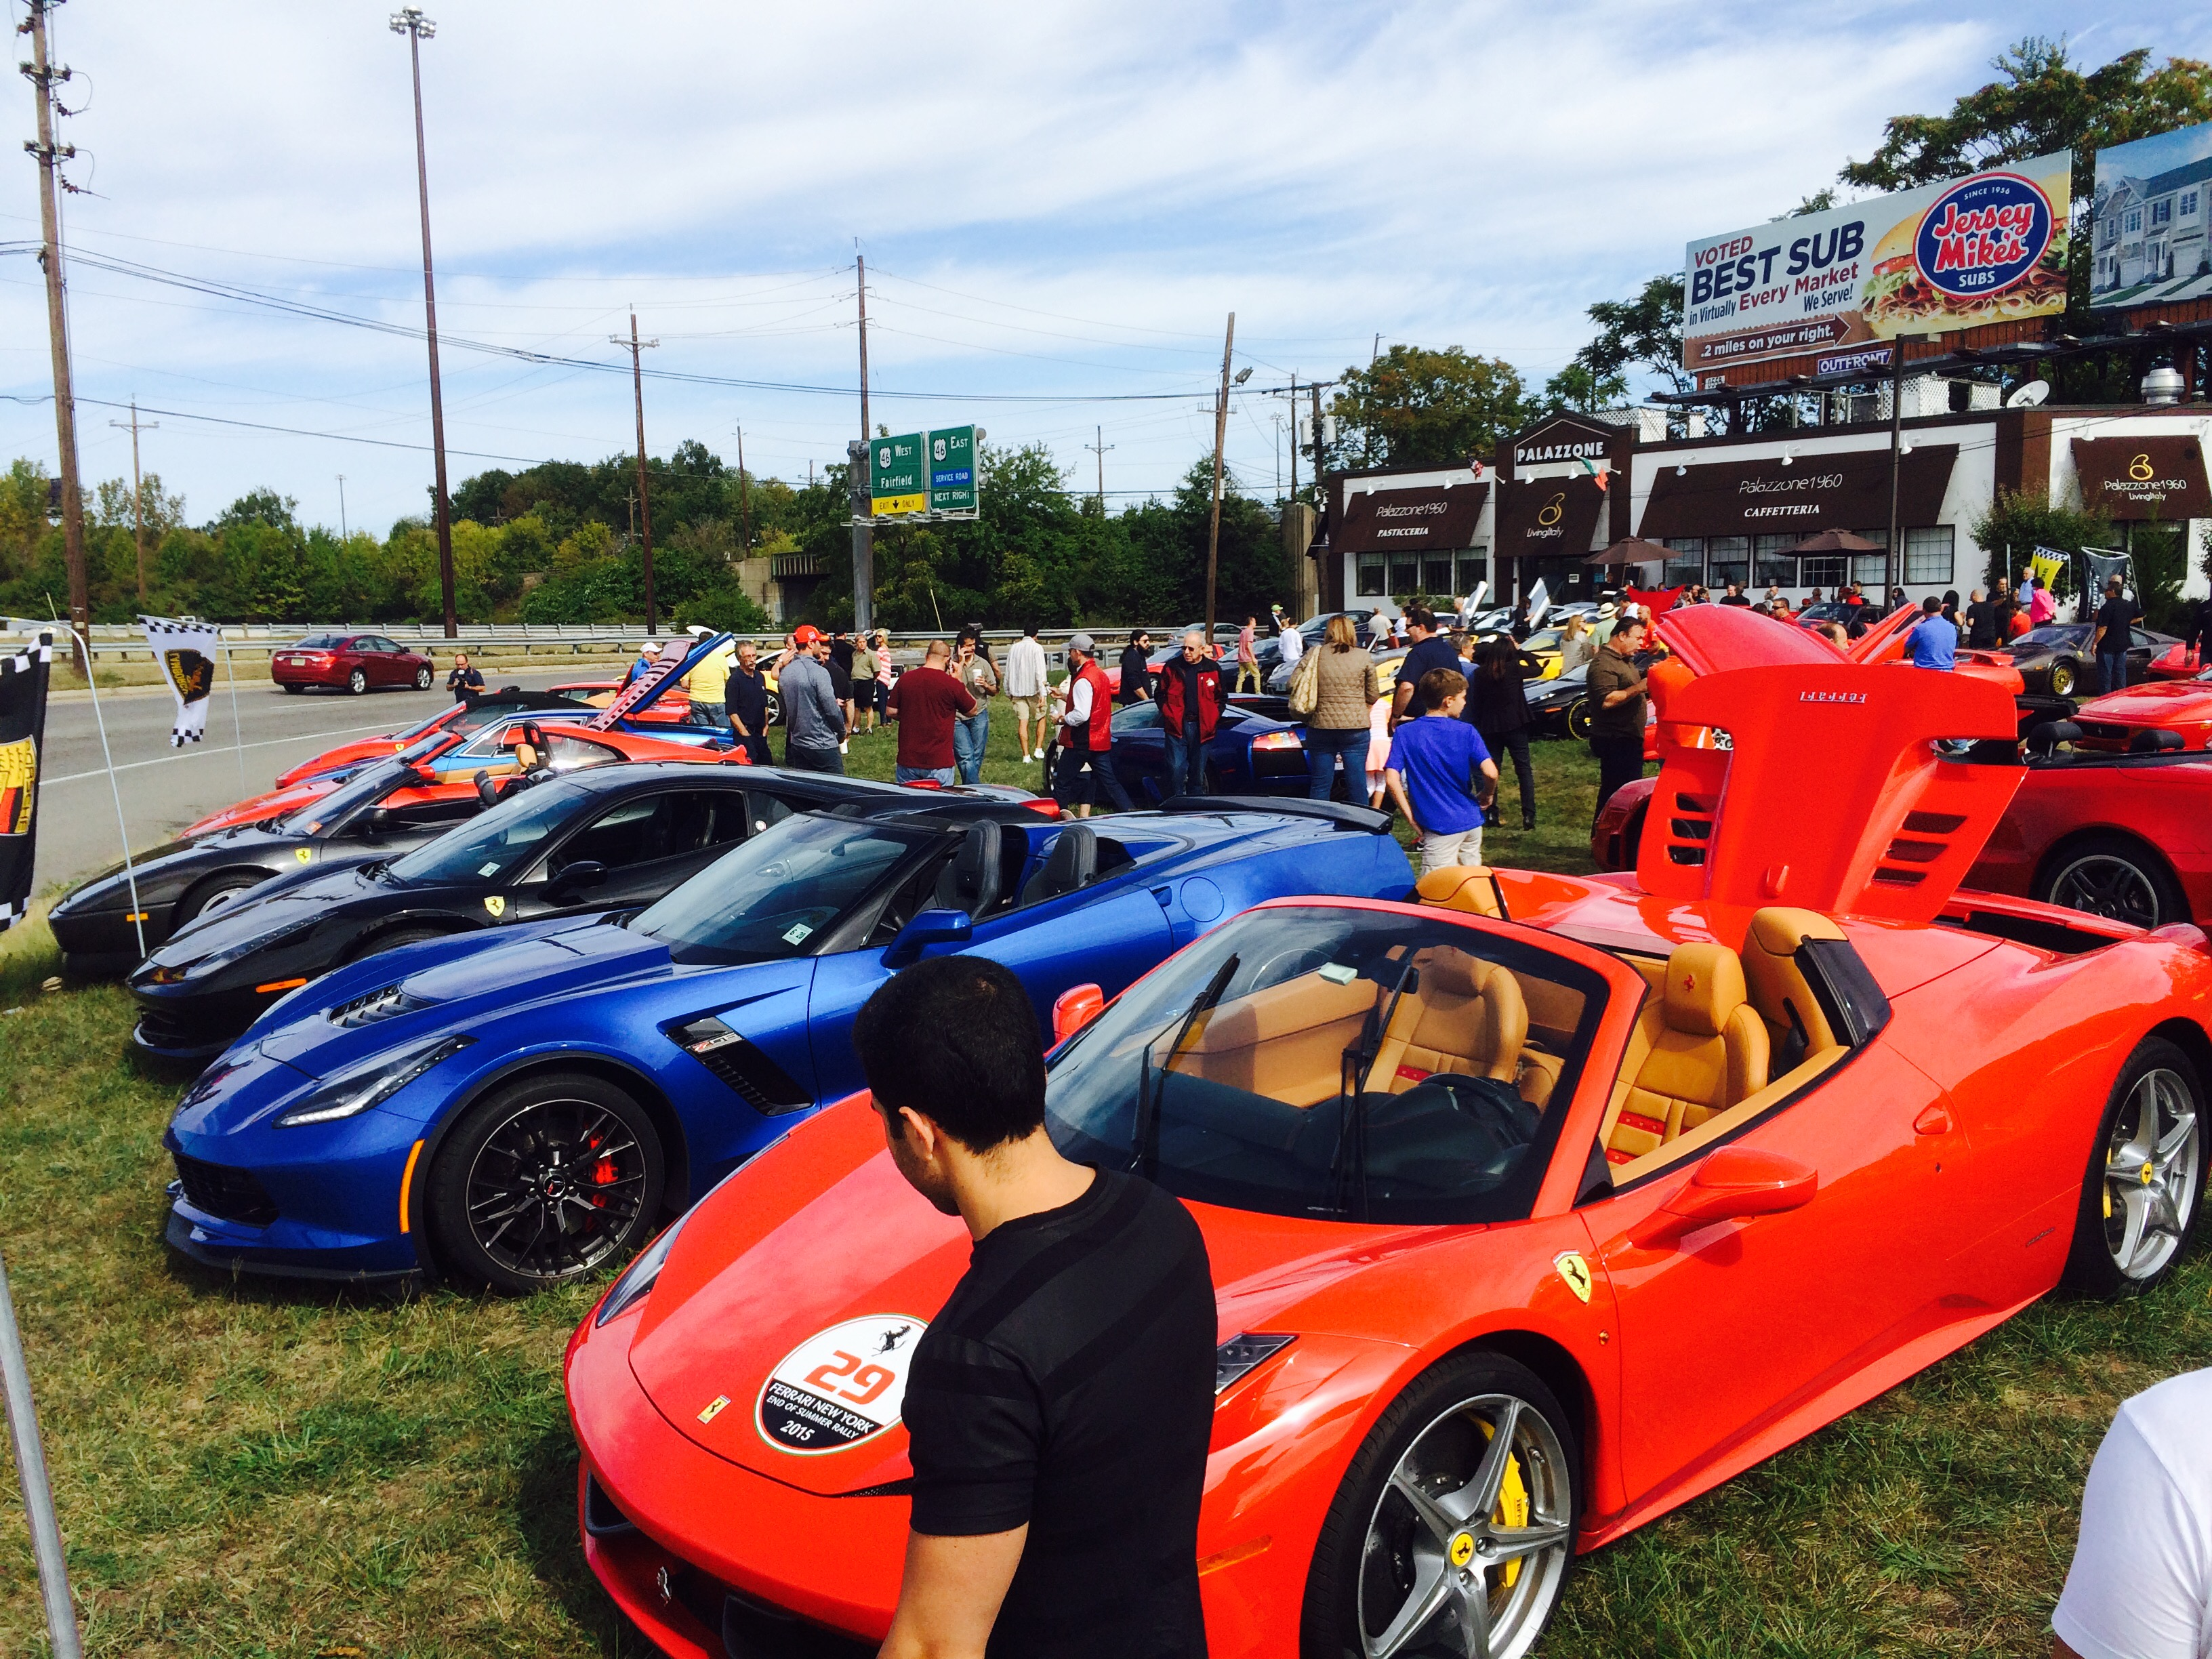 Driven by Purpose Palazzone Event 9/27/15